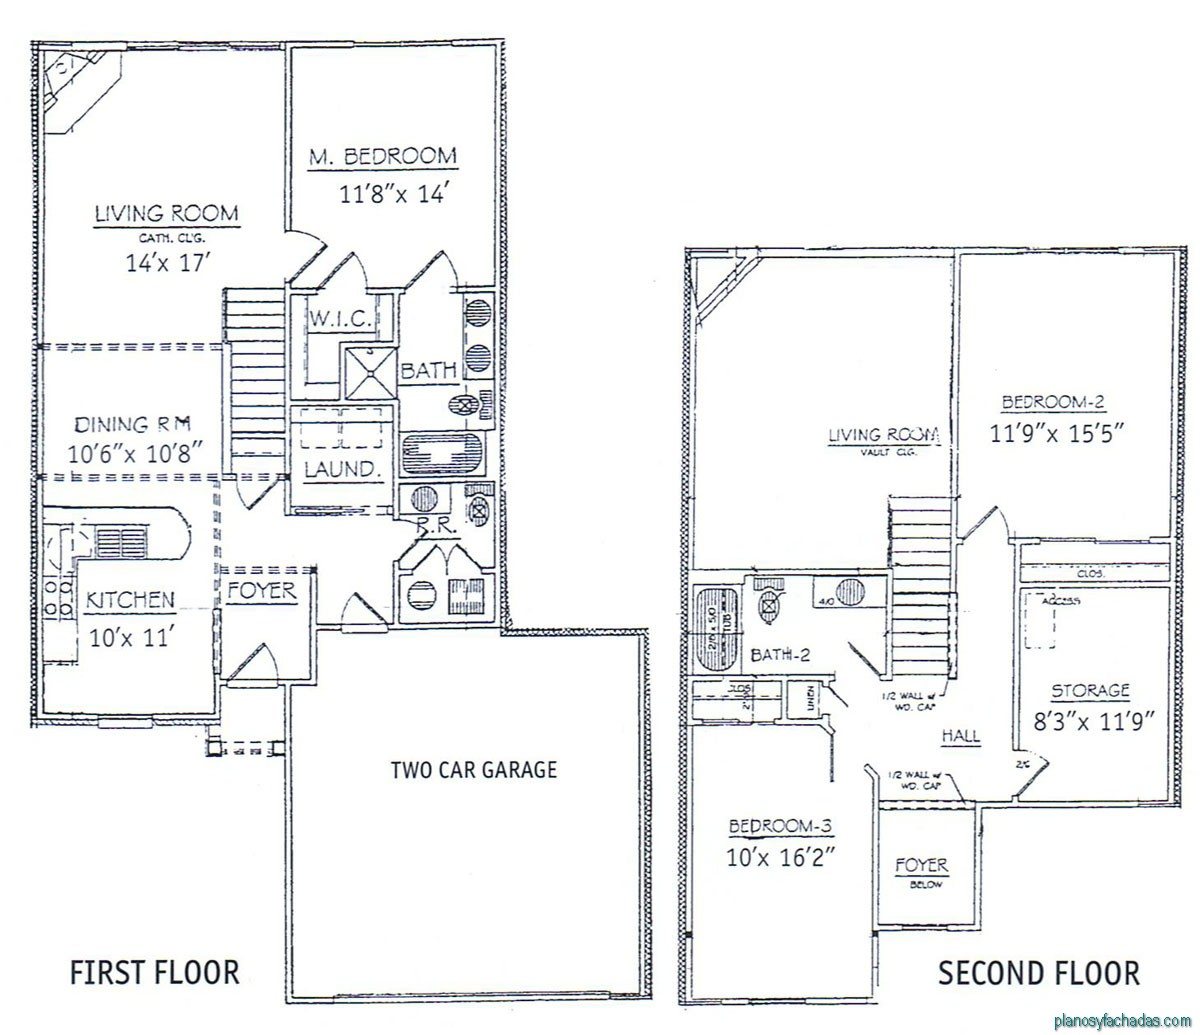 2 story house plans with basement 15 planos de casas peque 241 as de dos pisos planos y 26291